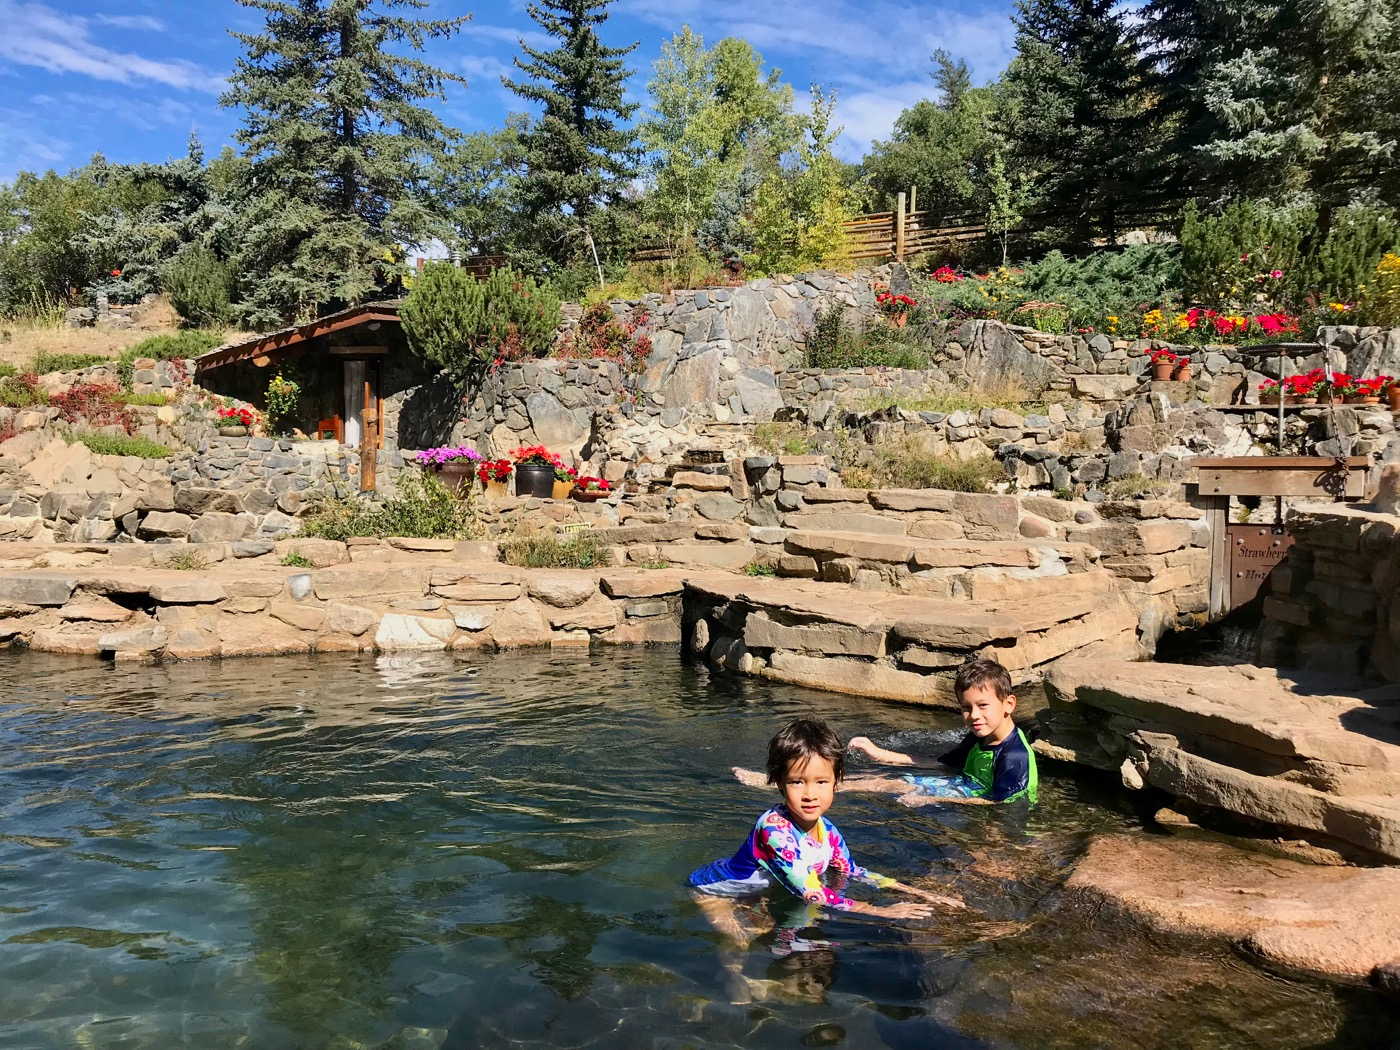 Soaking in Steamboat Springs